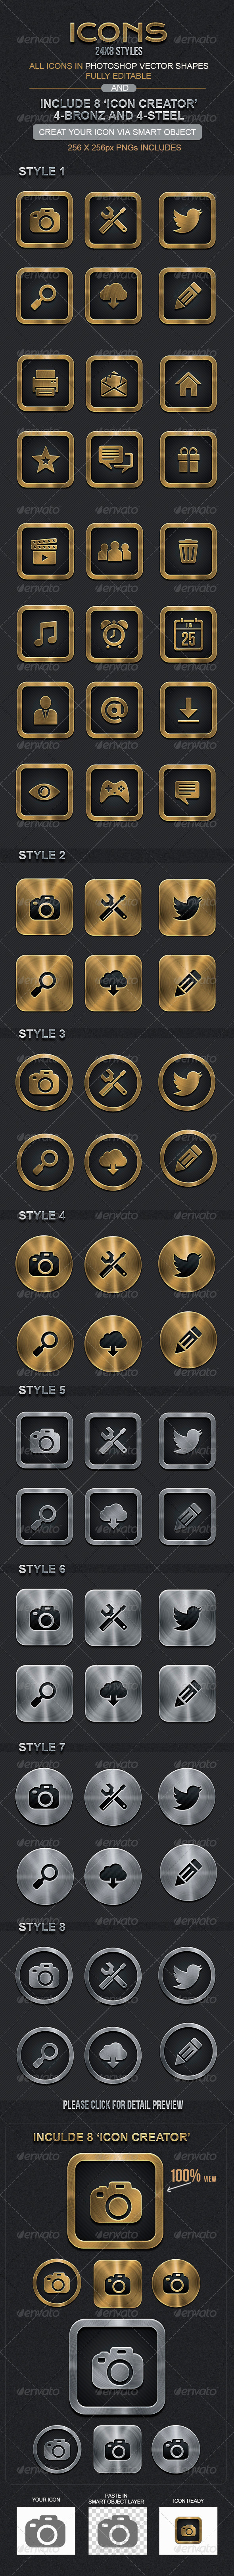 GraphicRiver Icons 5194862